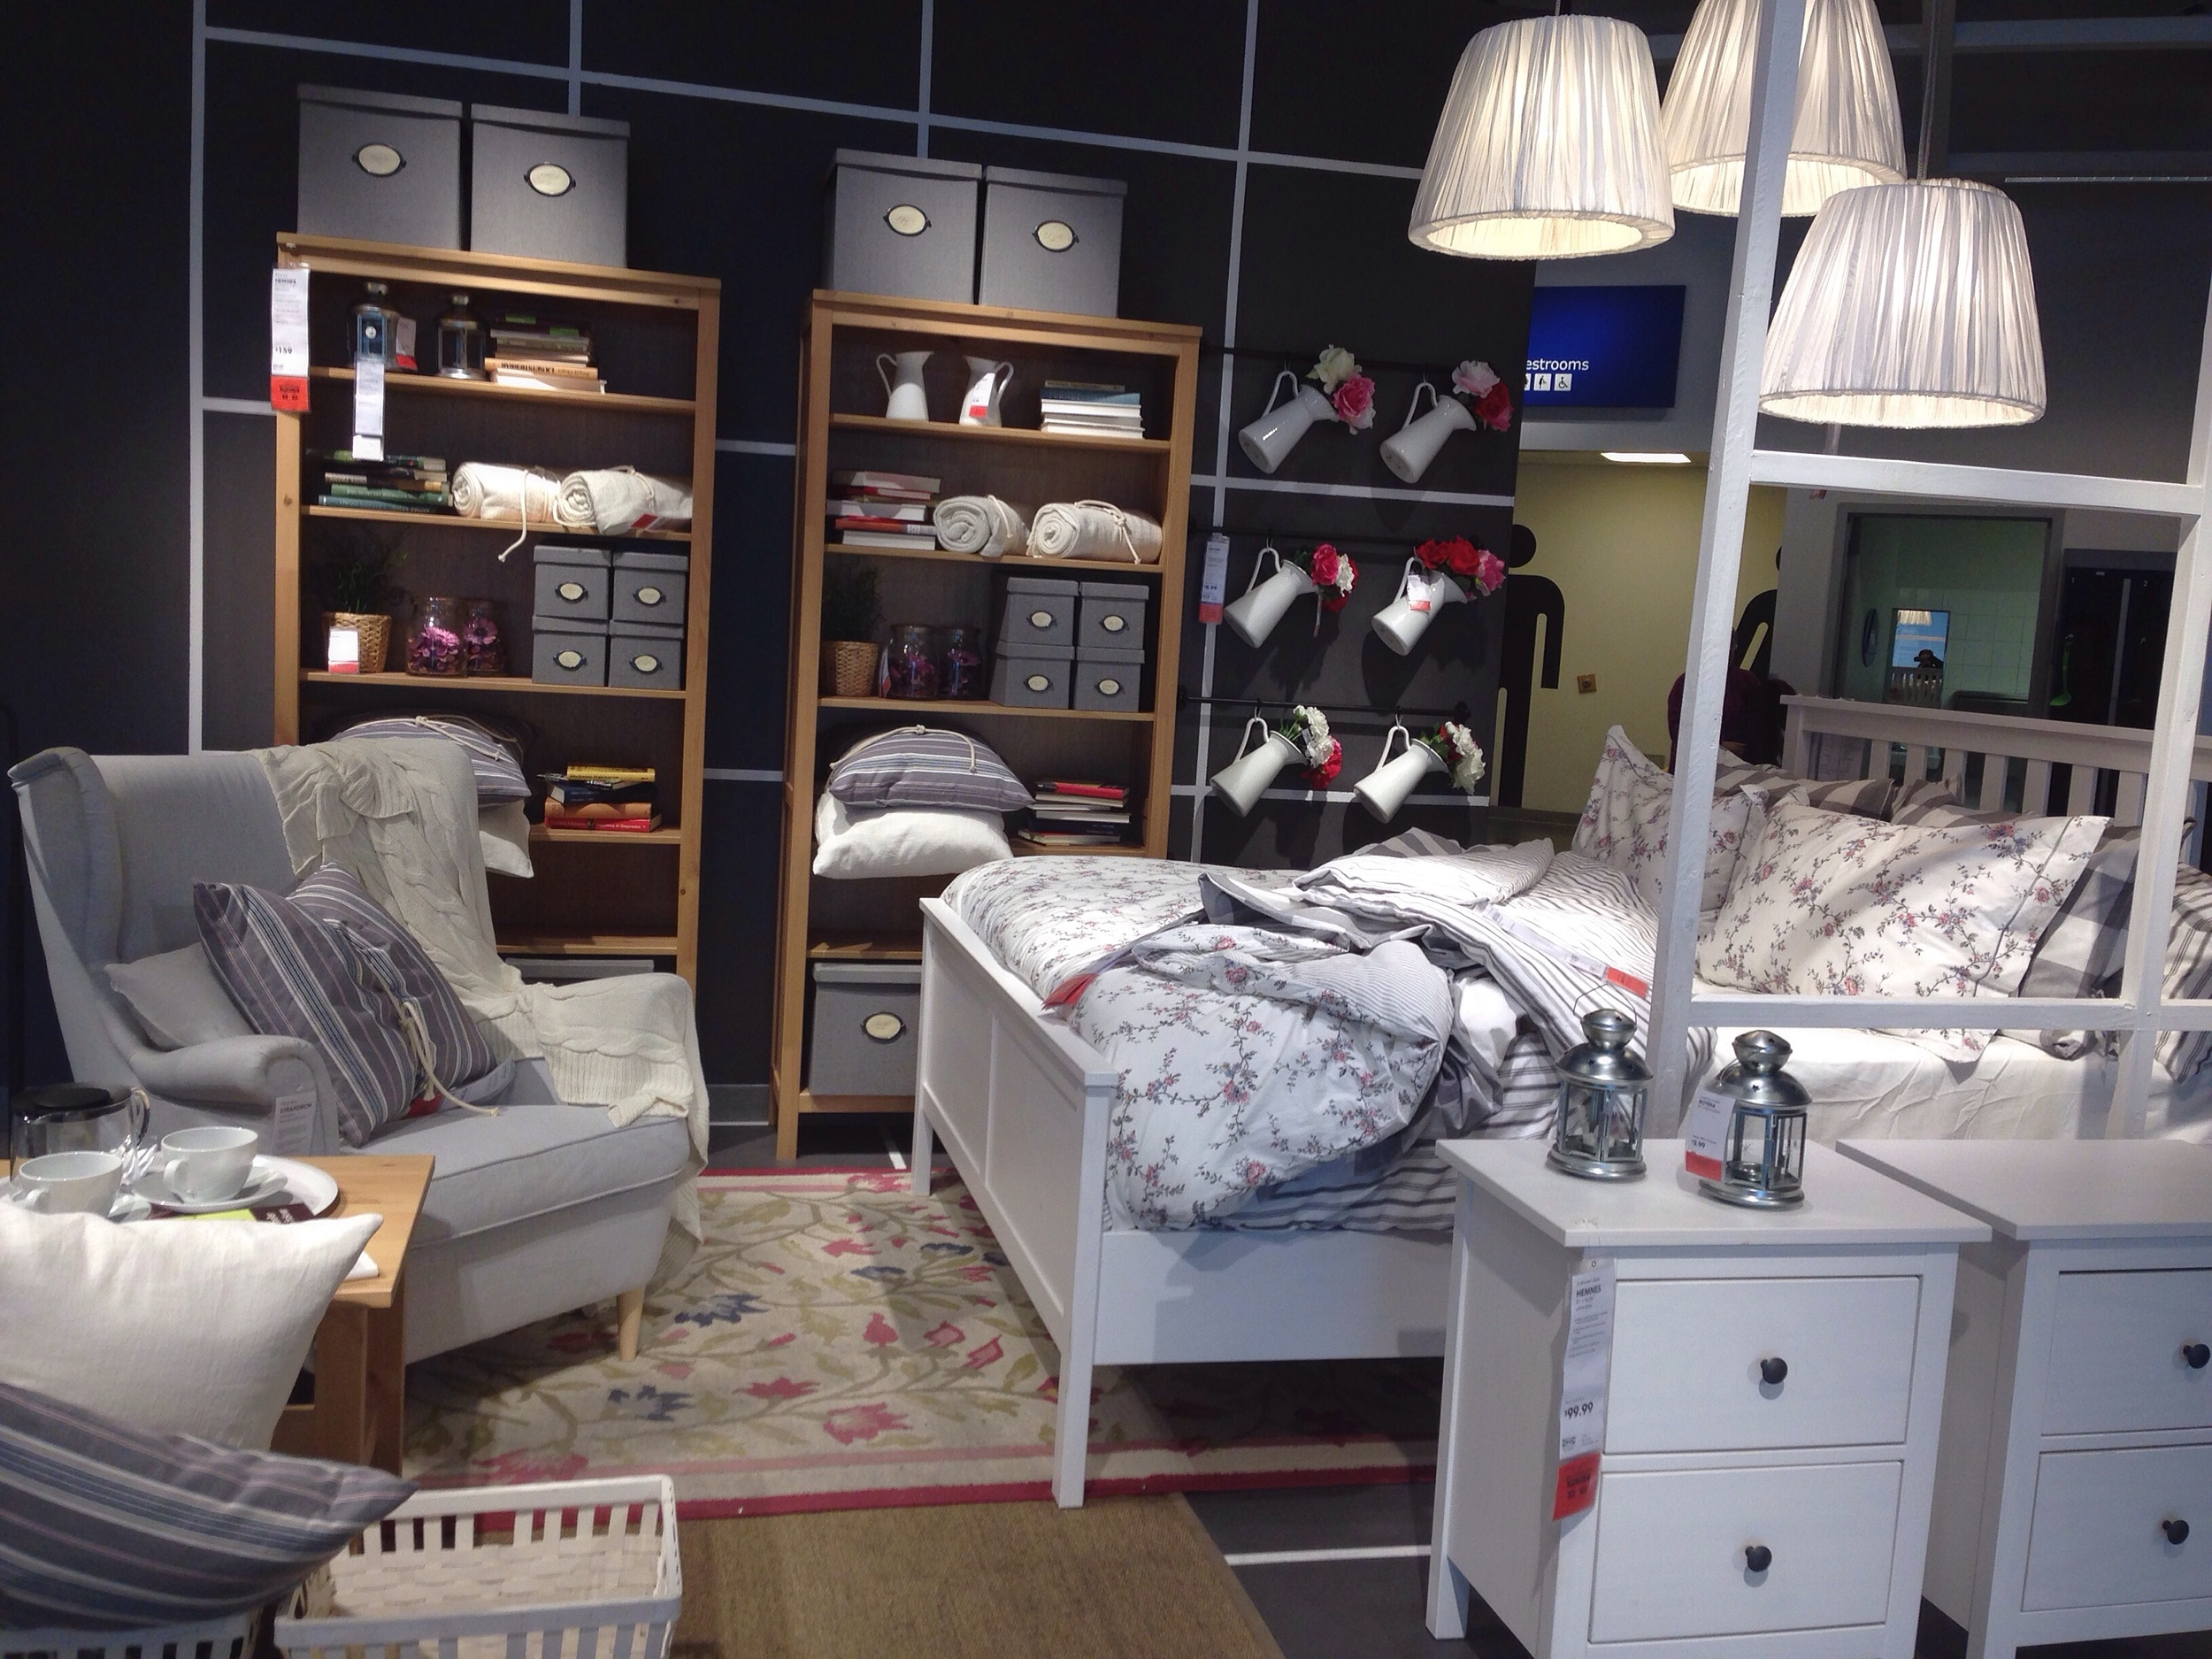 First trip to IKEA - loved the Hemnes line and farmhouse-inspired accessories